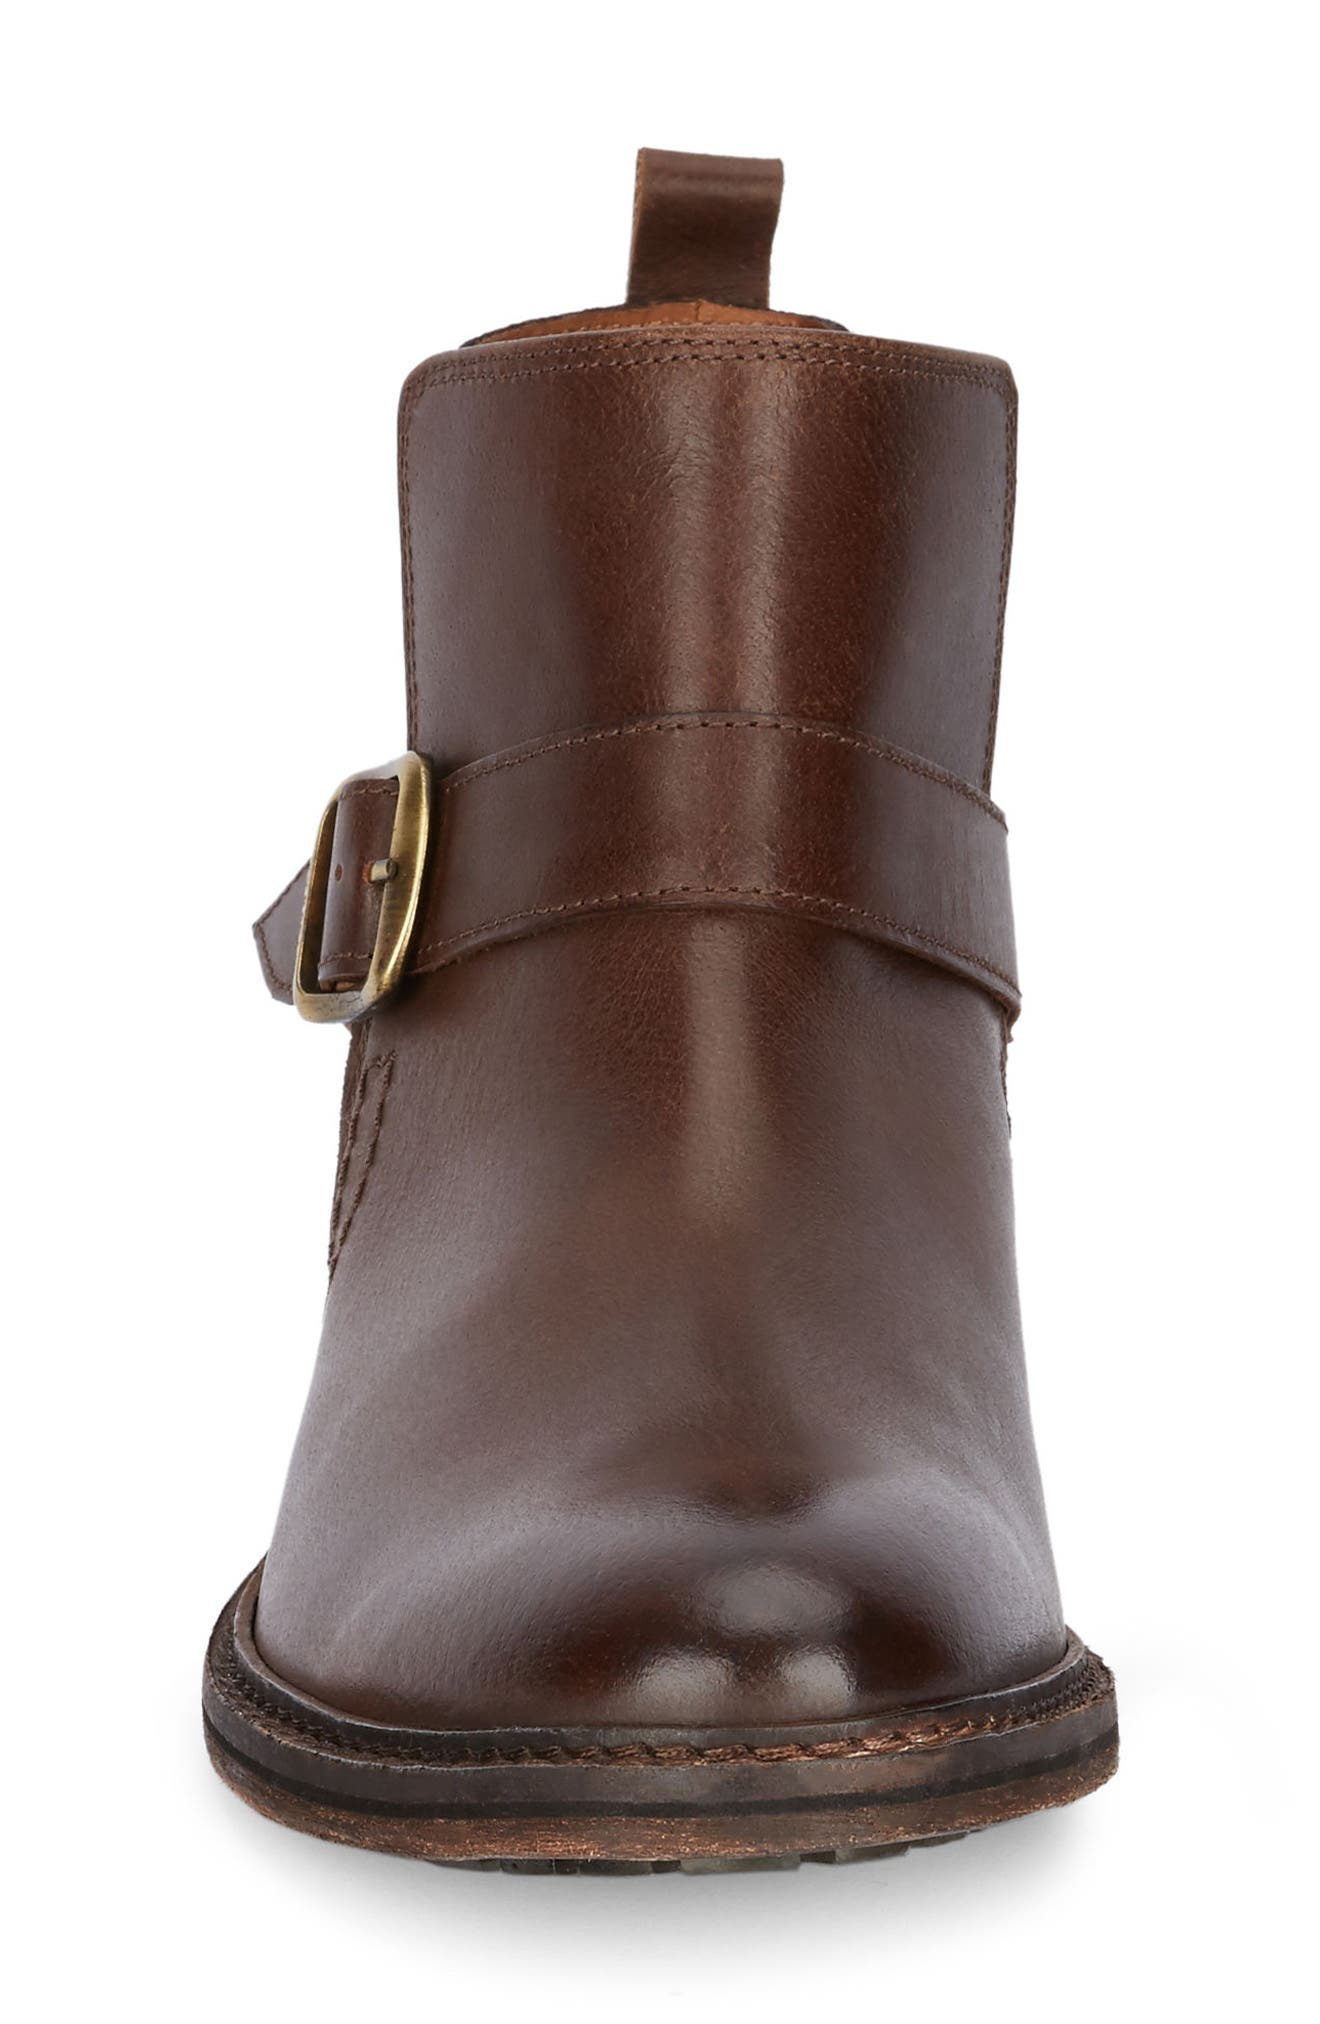 Hawk Buckle Boot,                             Alternate thumbnail 4, color,                             201